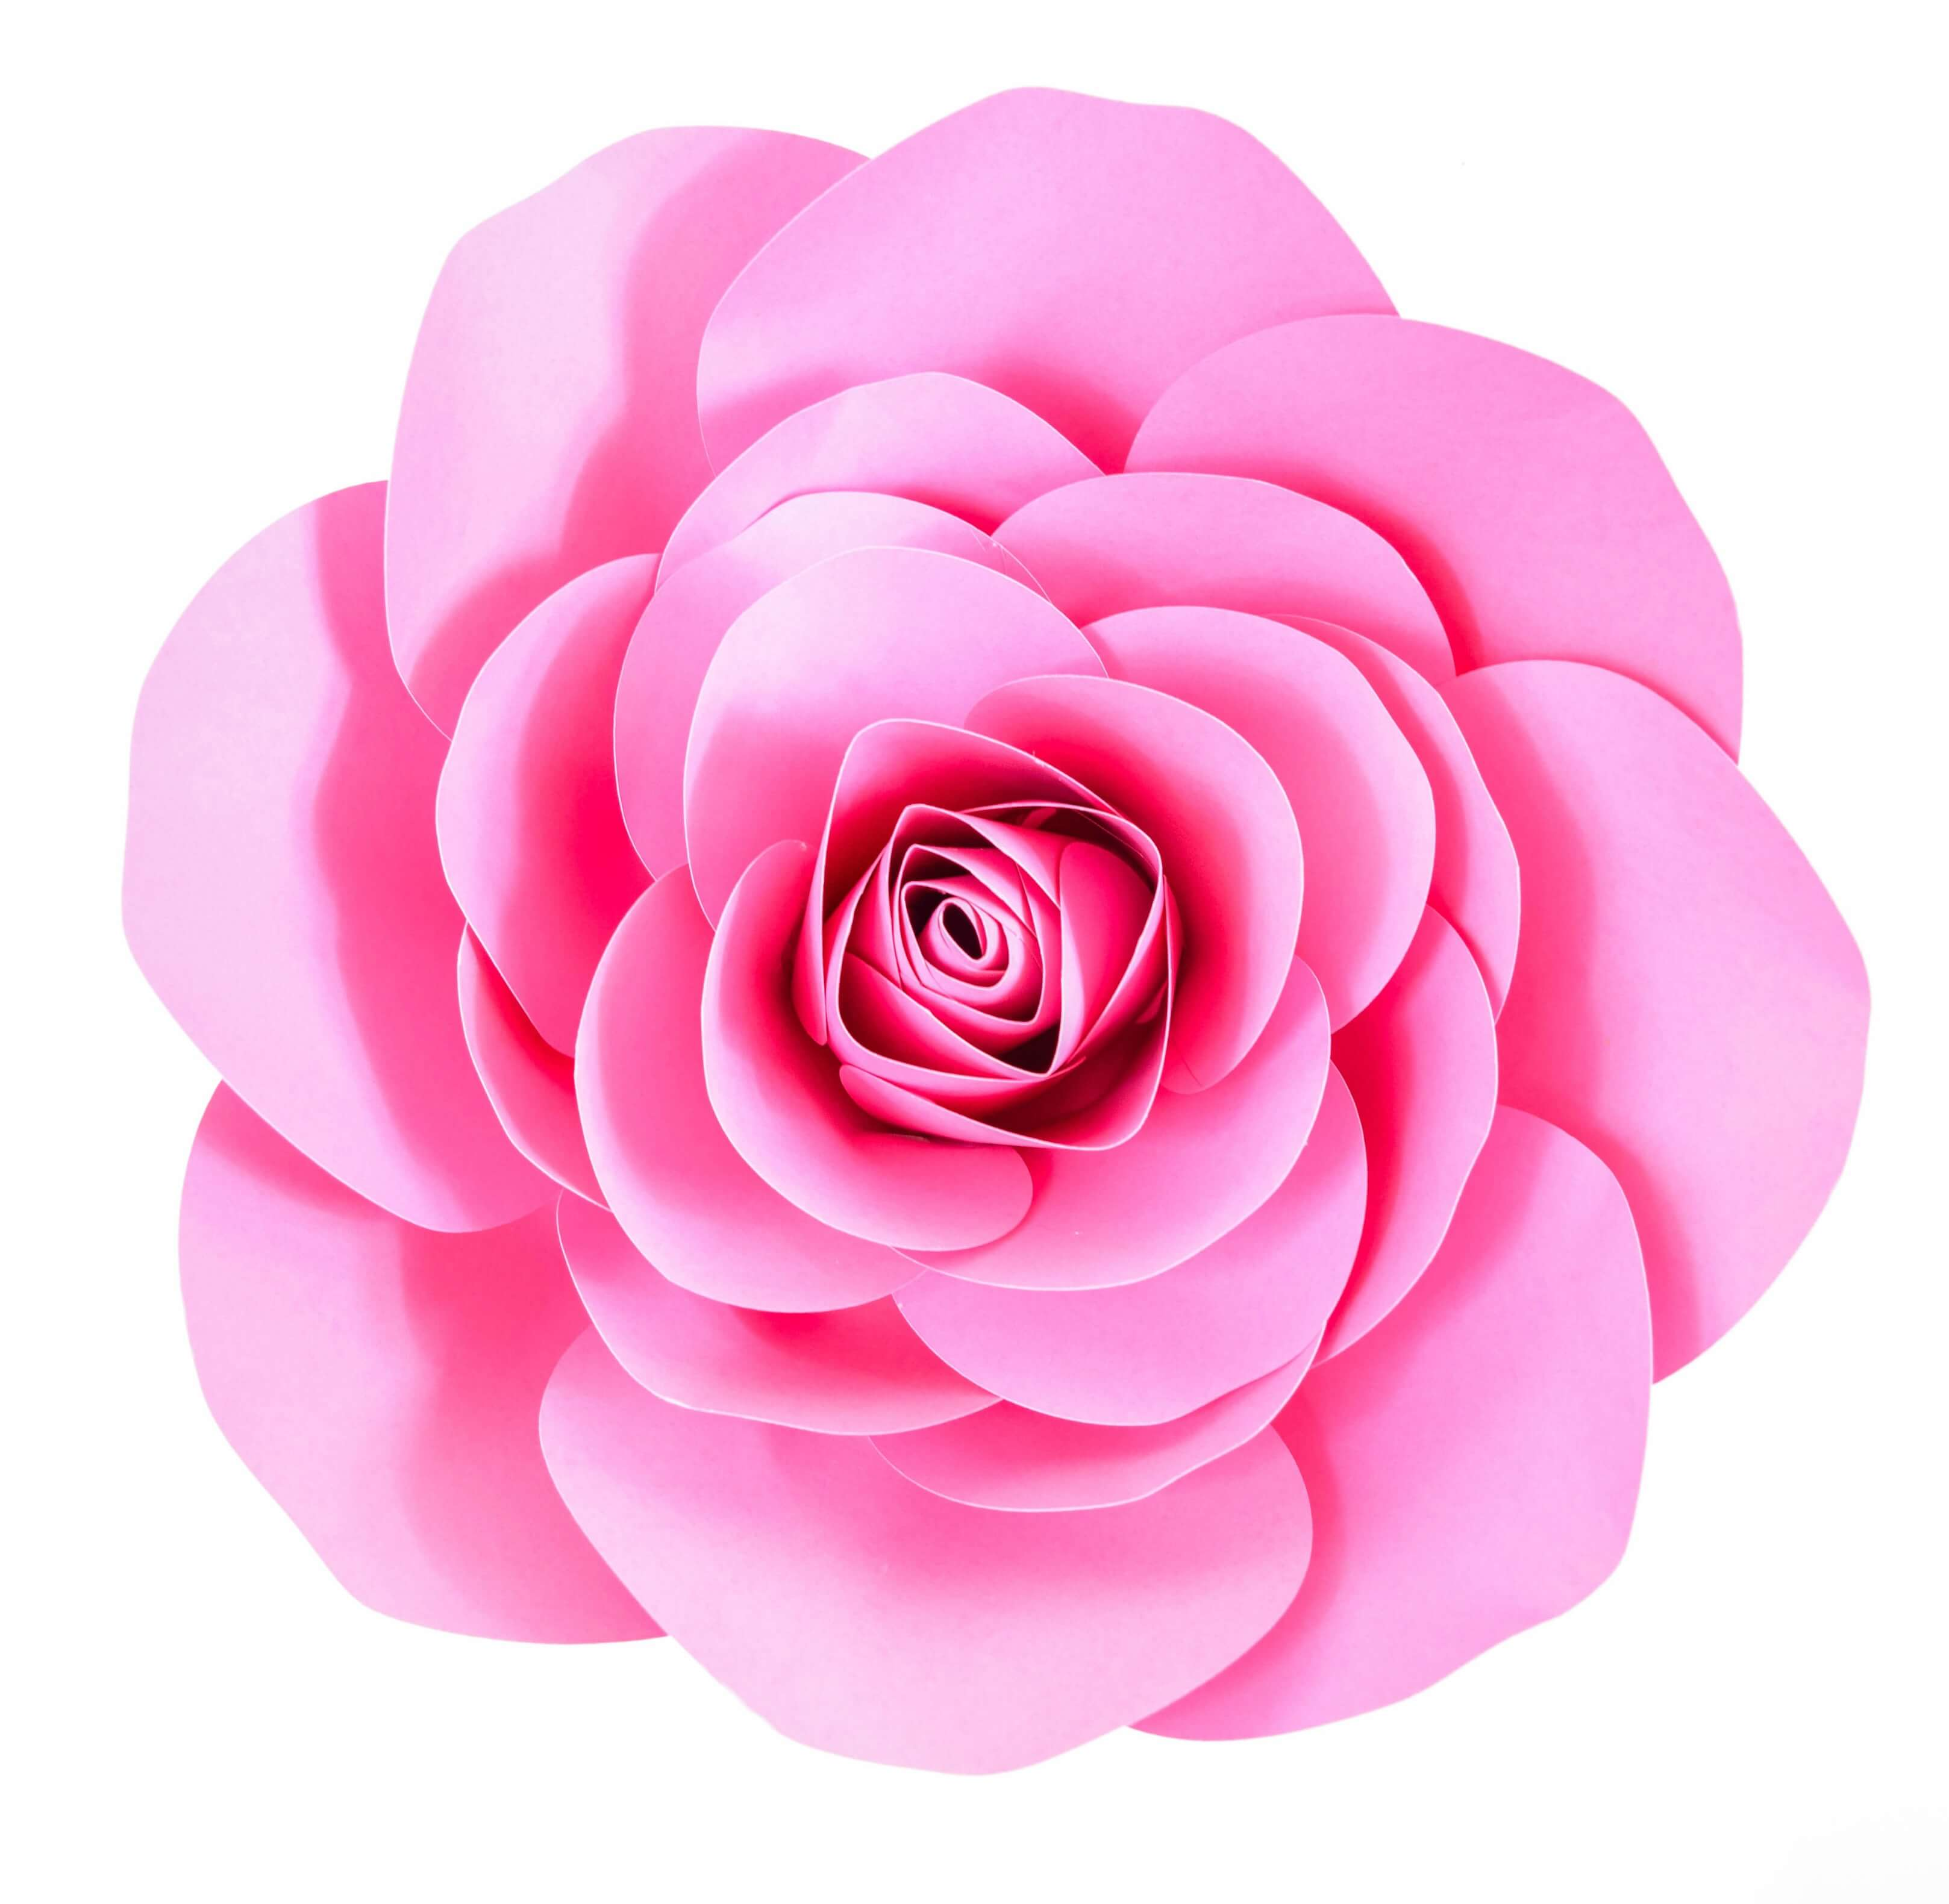 picture about Roses Templates Printable titled Free of charge Massive Paper Rose Template: Do-it-yourself Camellia Rose Guide